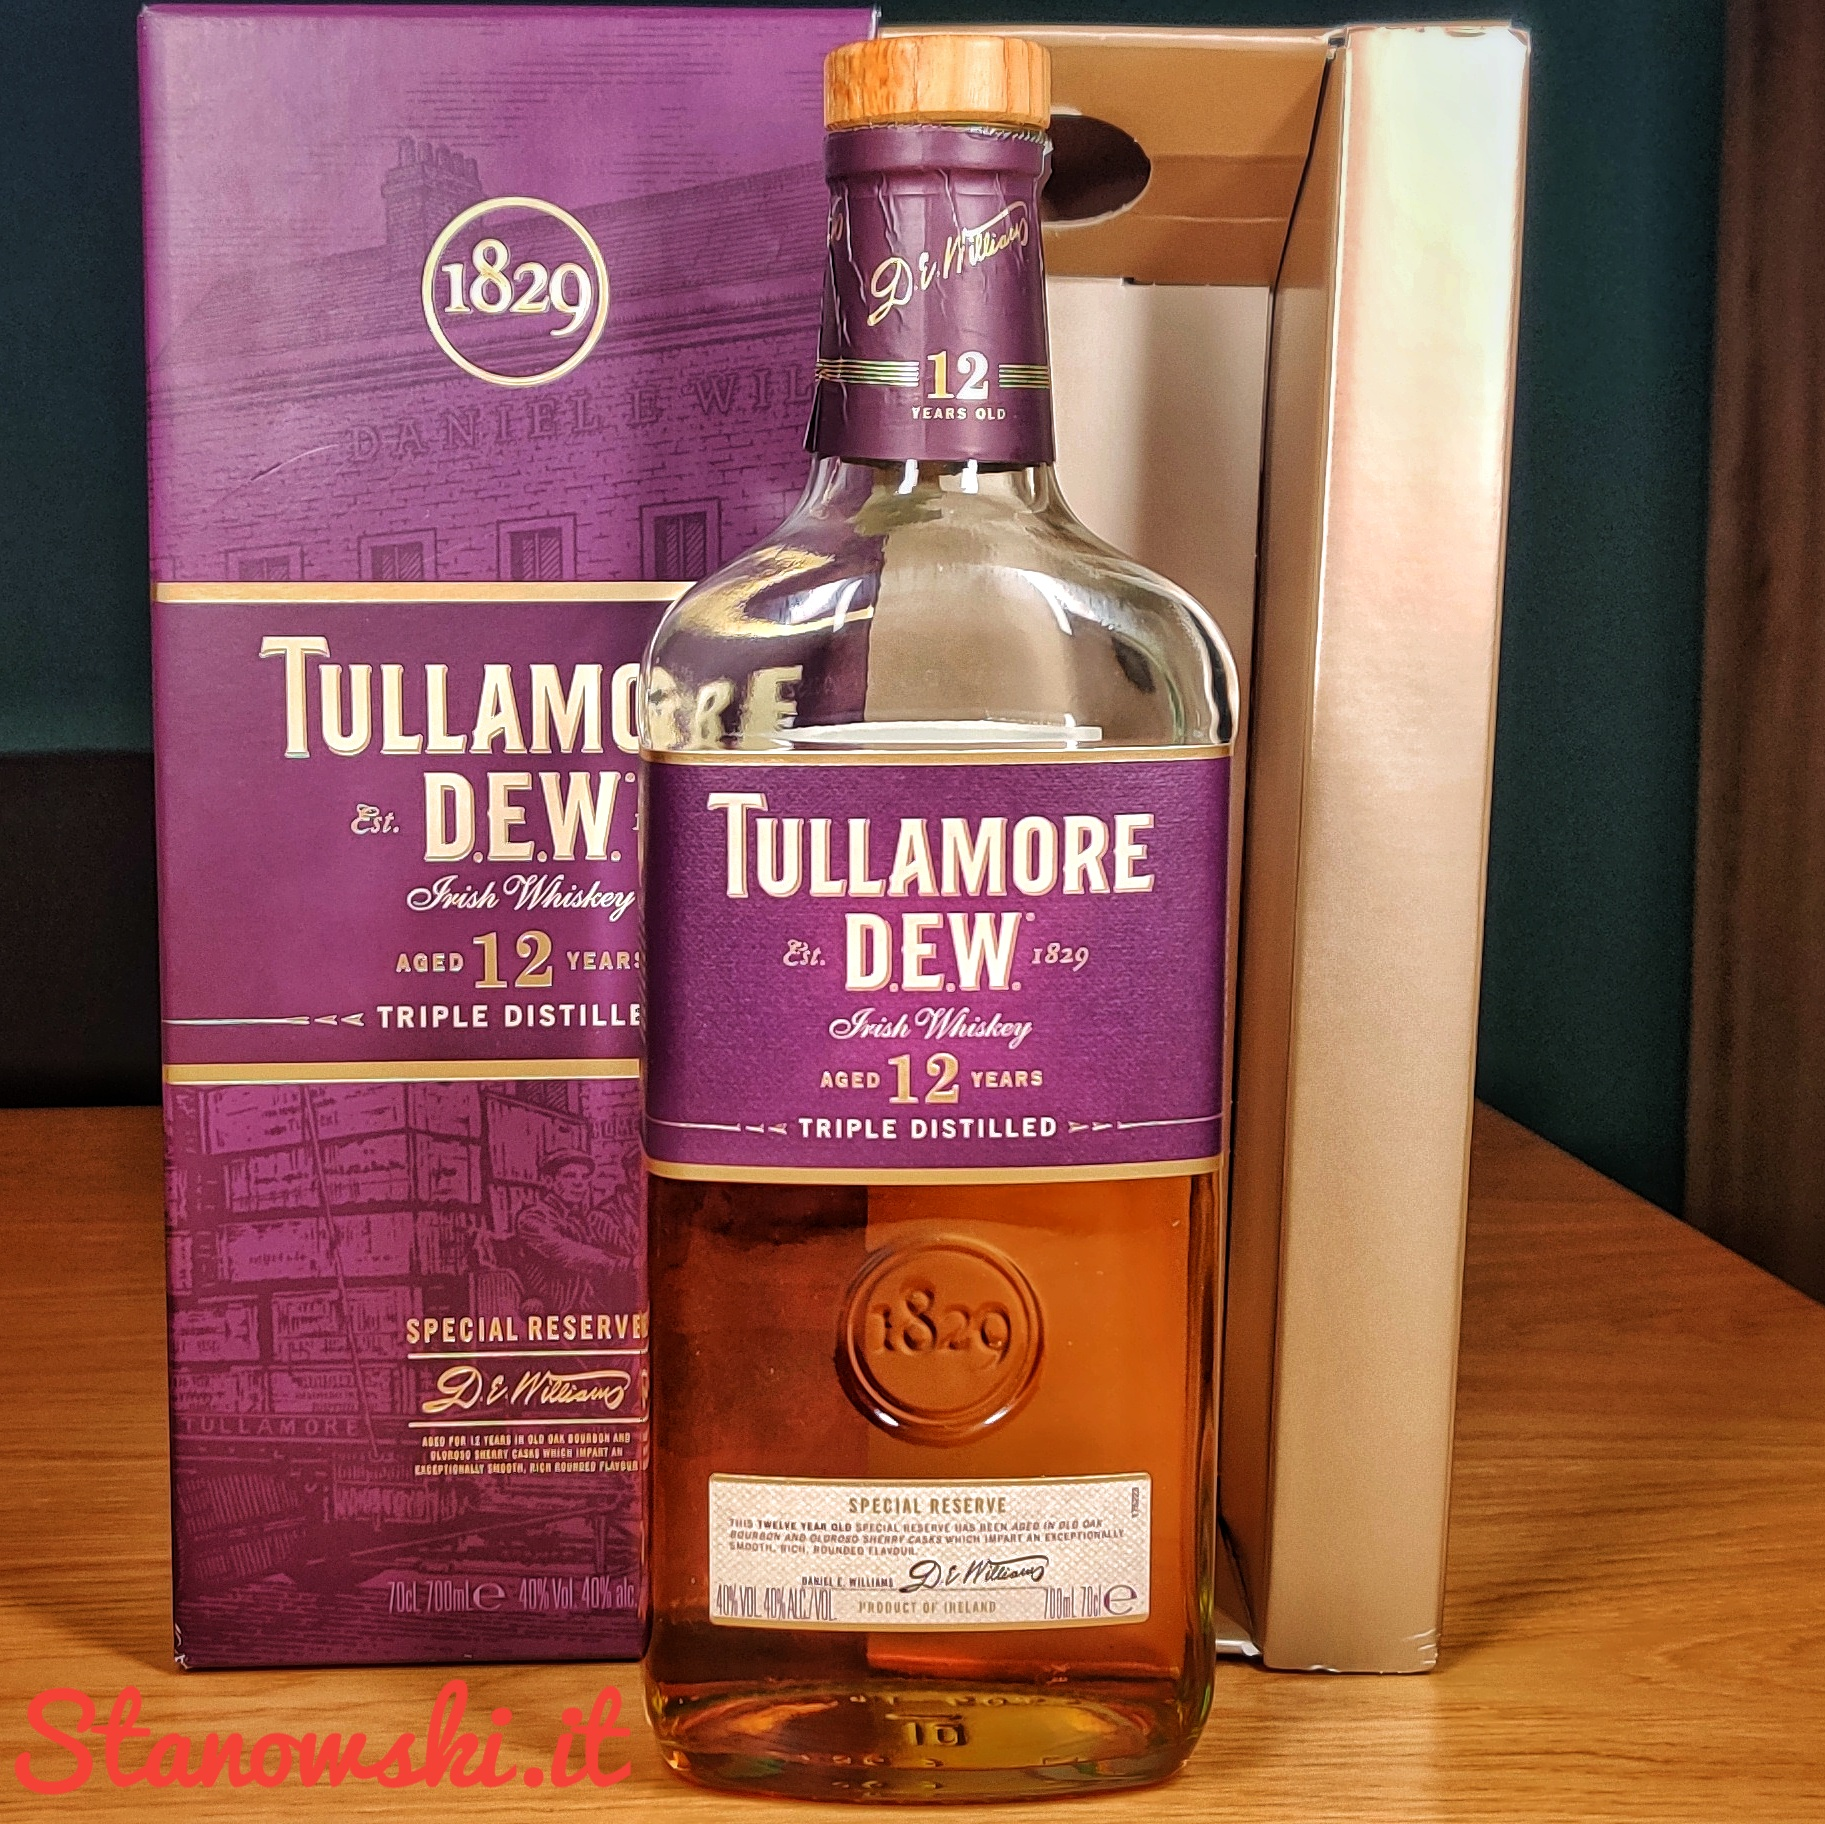 Tullamore D.E.W. 12 Year Old